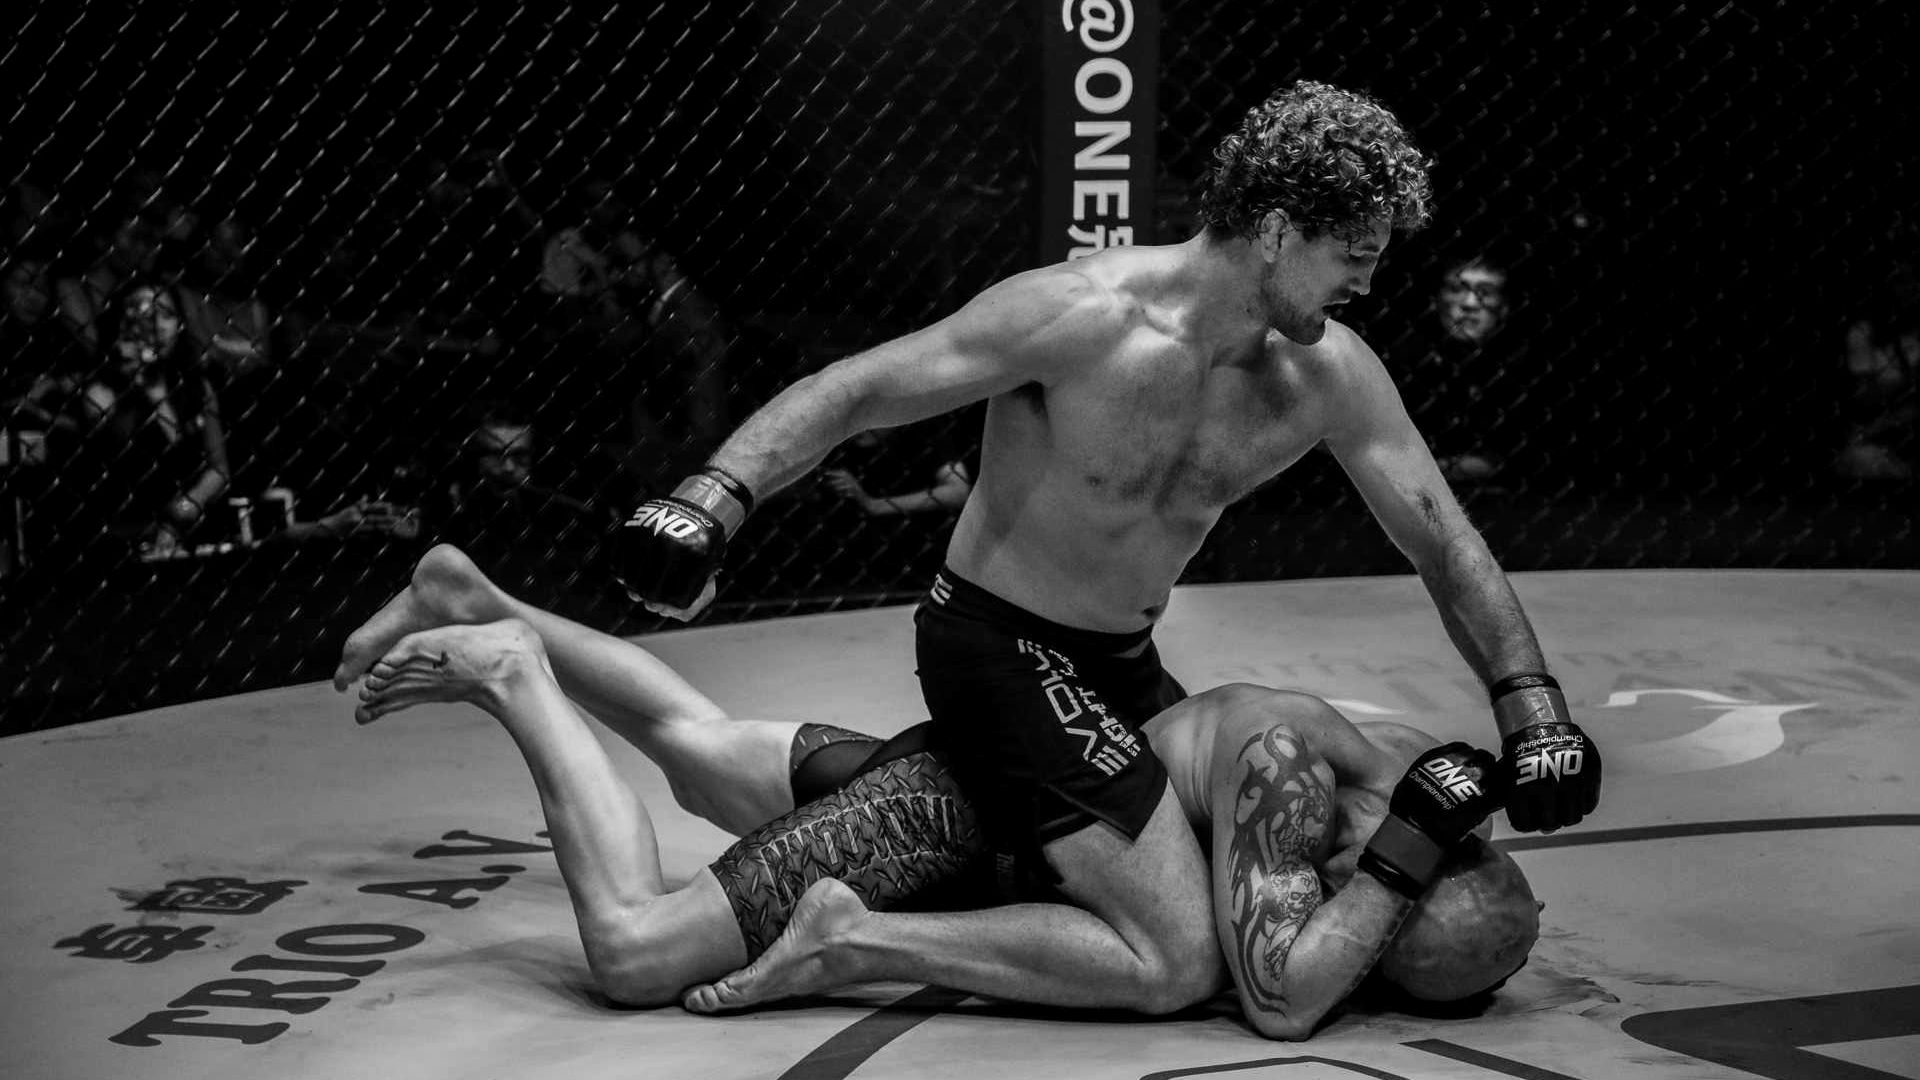 Ben Askren on top of his opponent in a ONE Championship bout